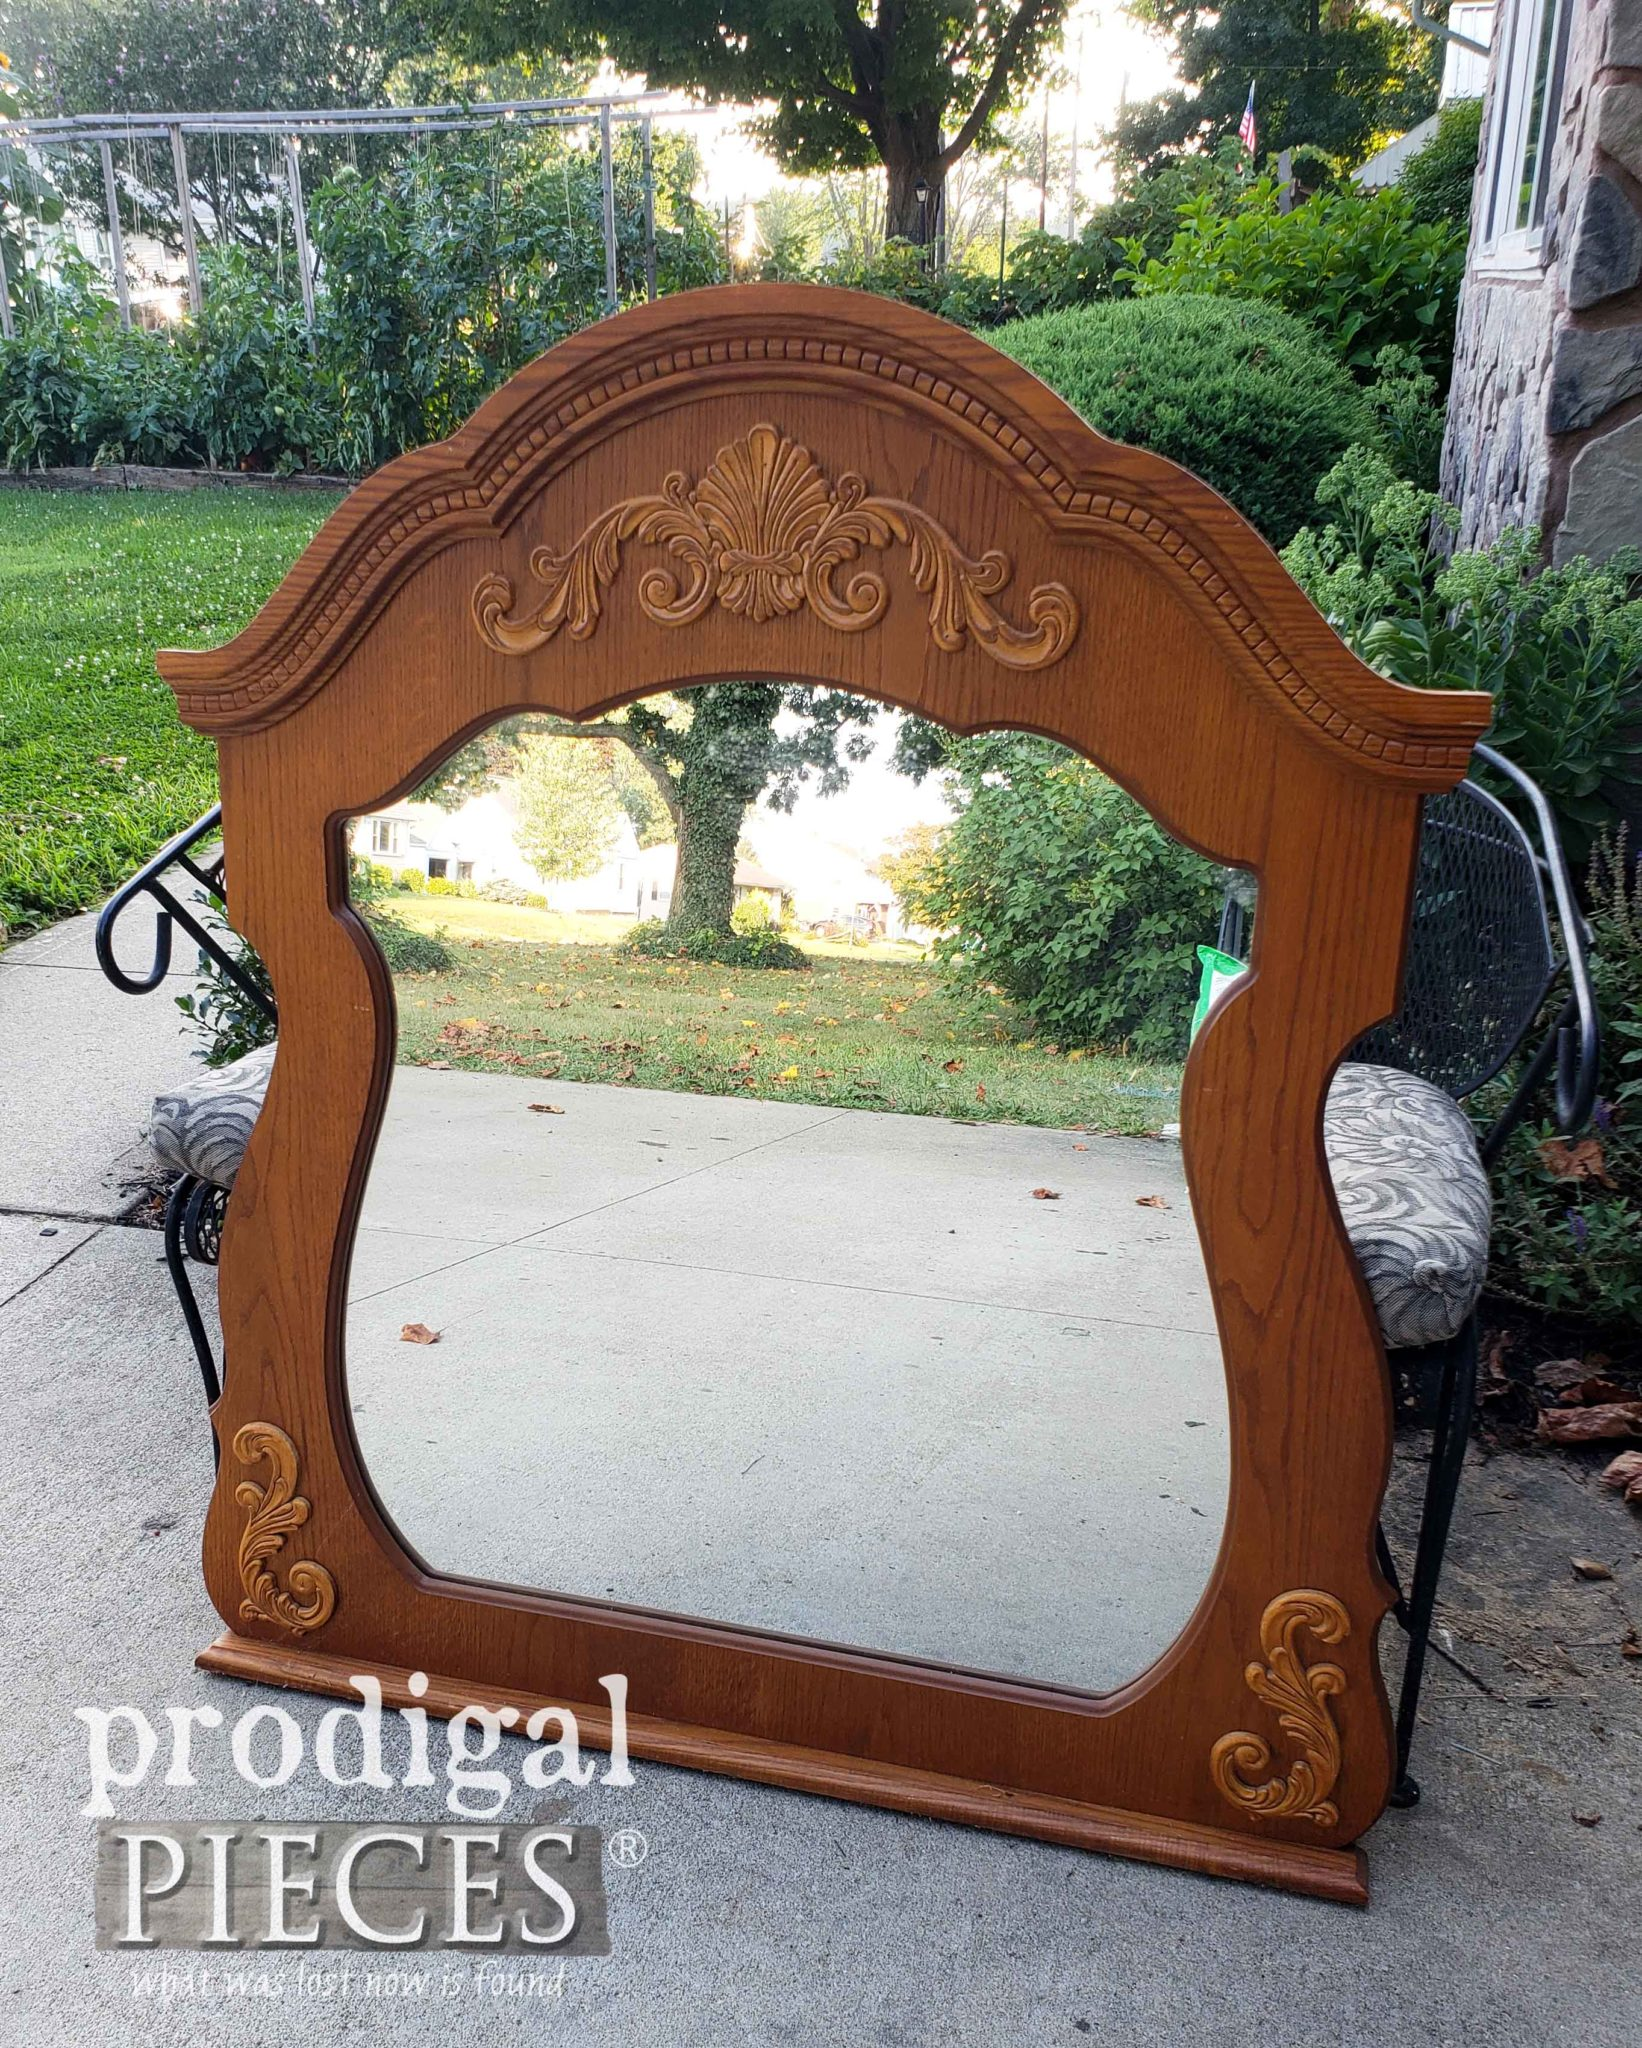 Cast-off Dresser Mirror Upcycled by Larissa of Prodigal Pieces | prodigalpieces.com